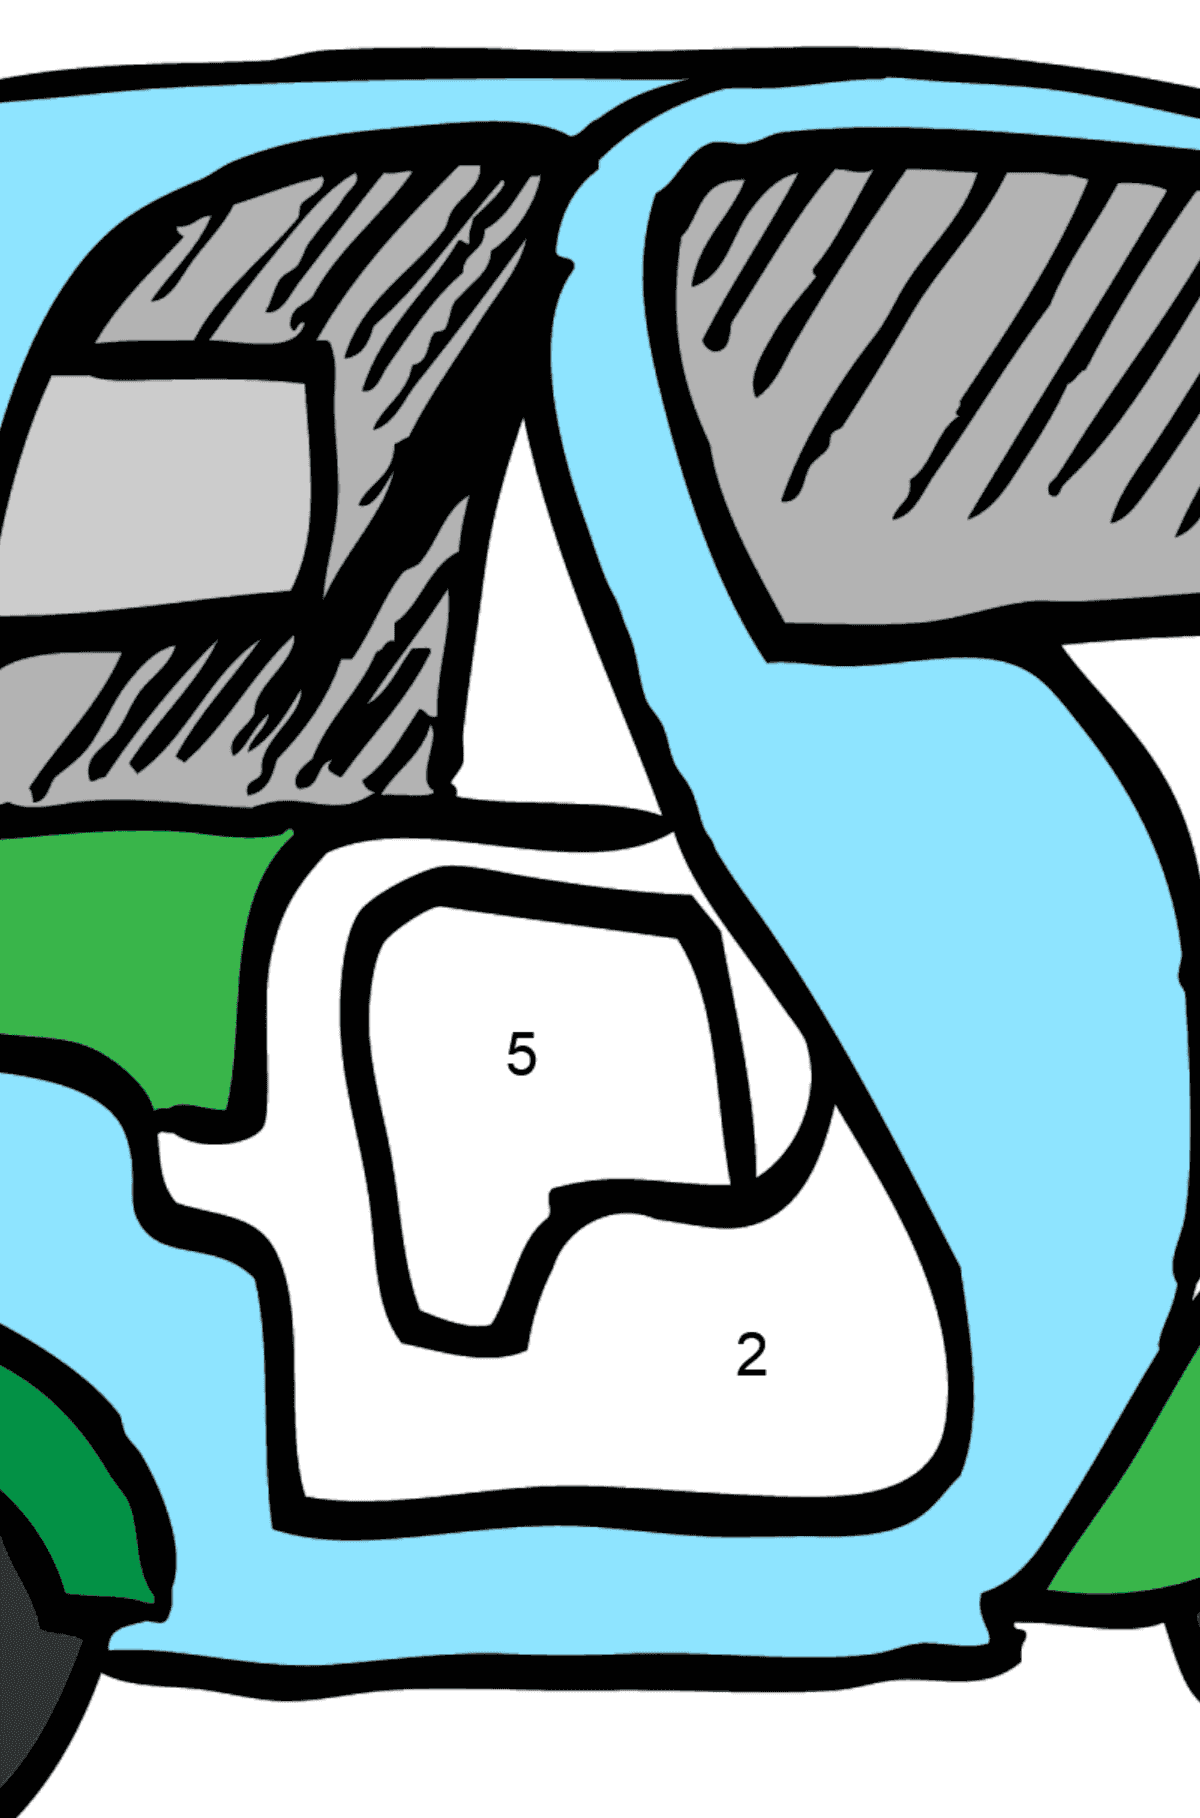 Coloring Page - A Moped is Carrying Mail - Coloring by Numbers for Kids